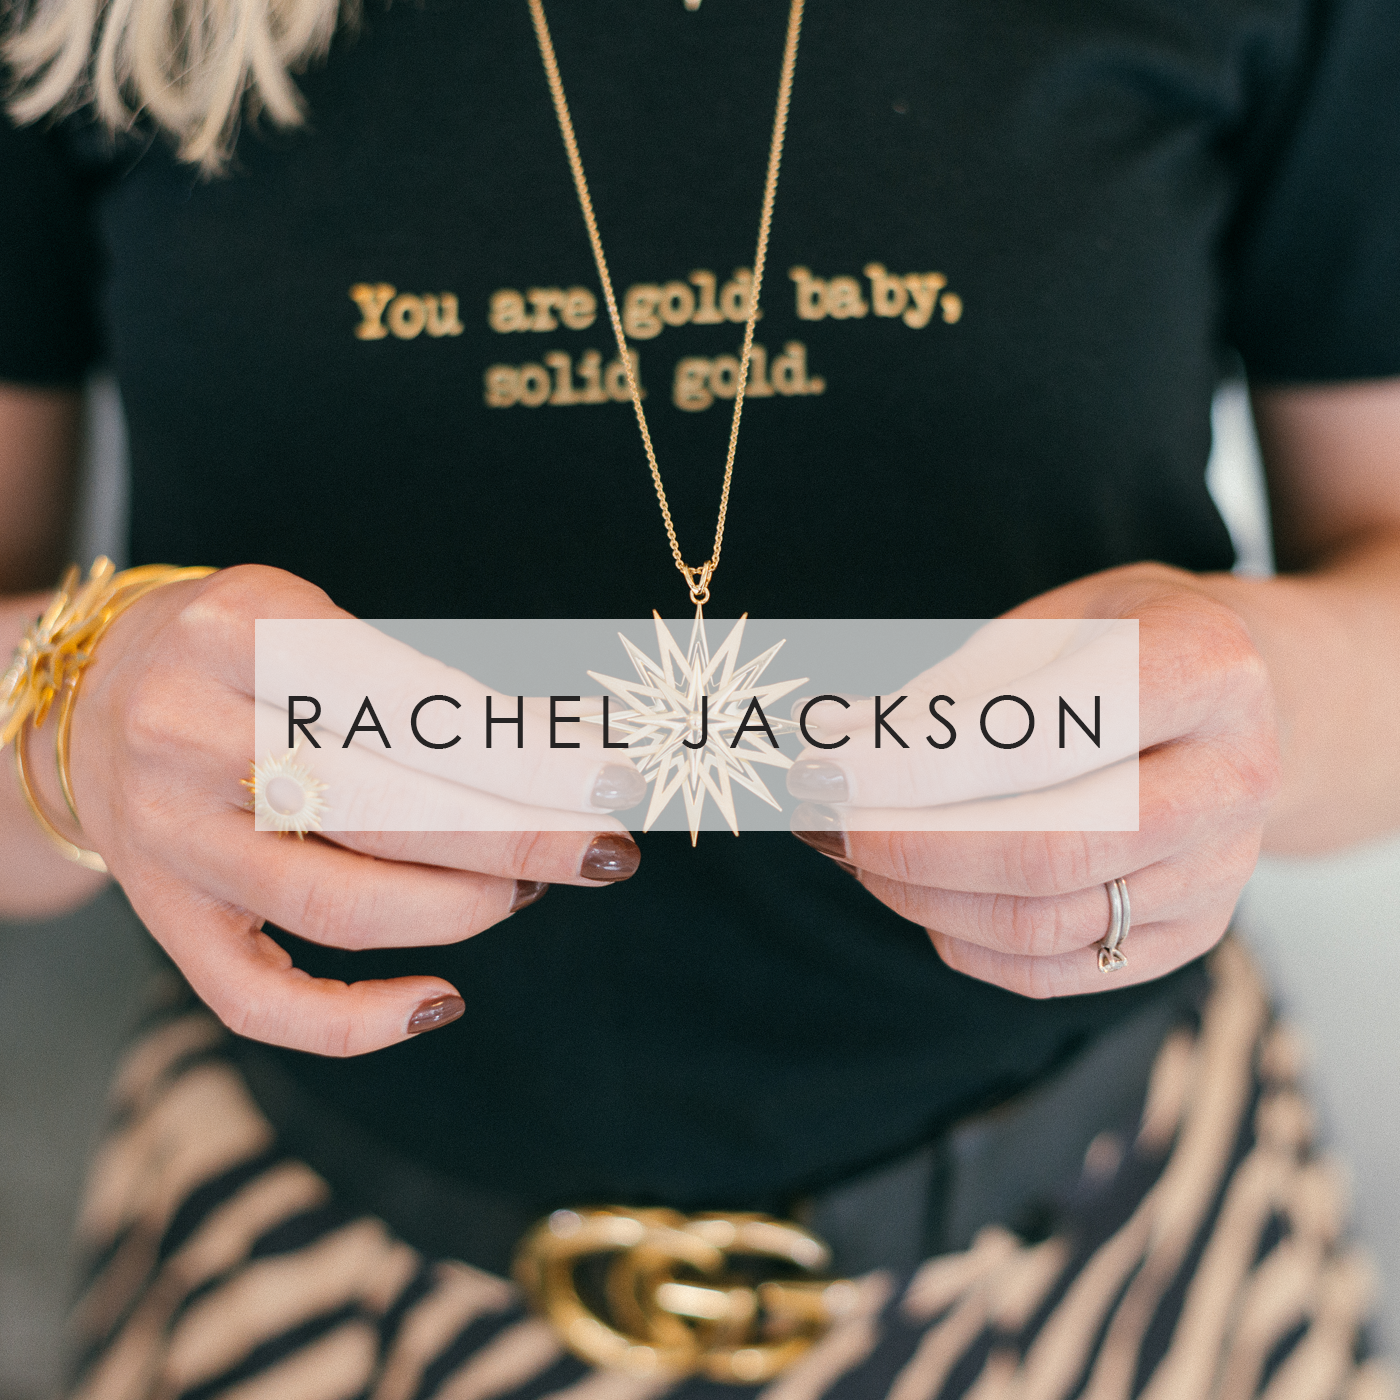 Rachel Jackson Nottingham jewellery shop